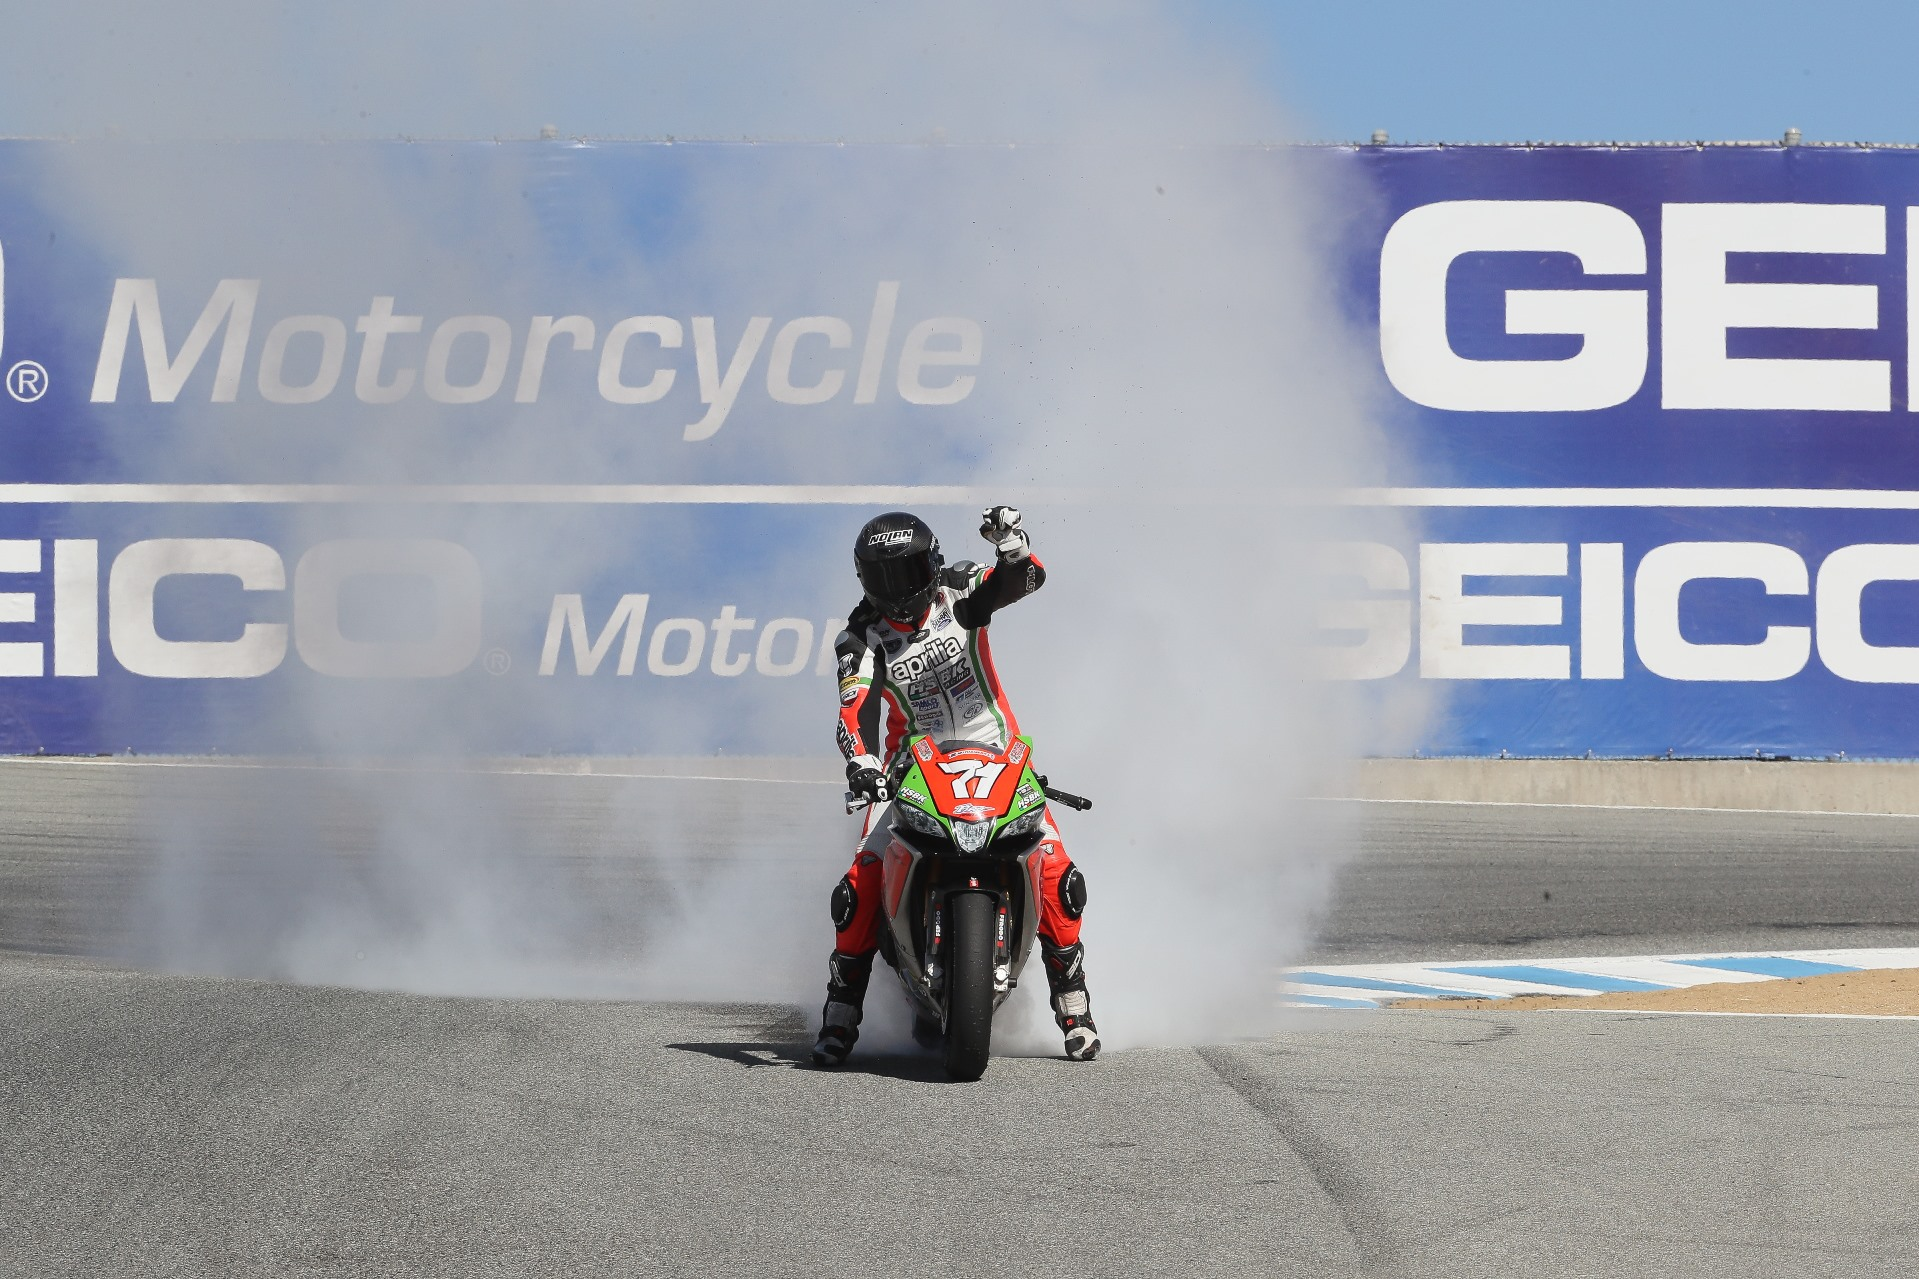 CORTI AND APRILIA HSBK LEAVE LAGUNA WITH TAINTED HARDWARE, UNNERVED SPIRITS